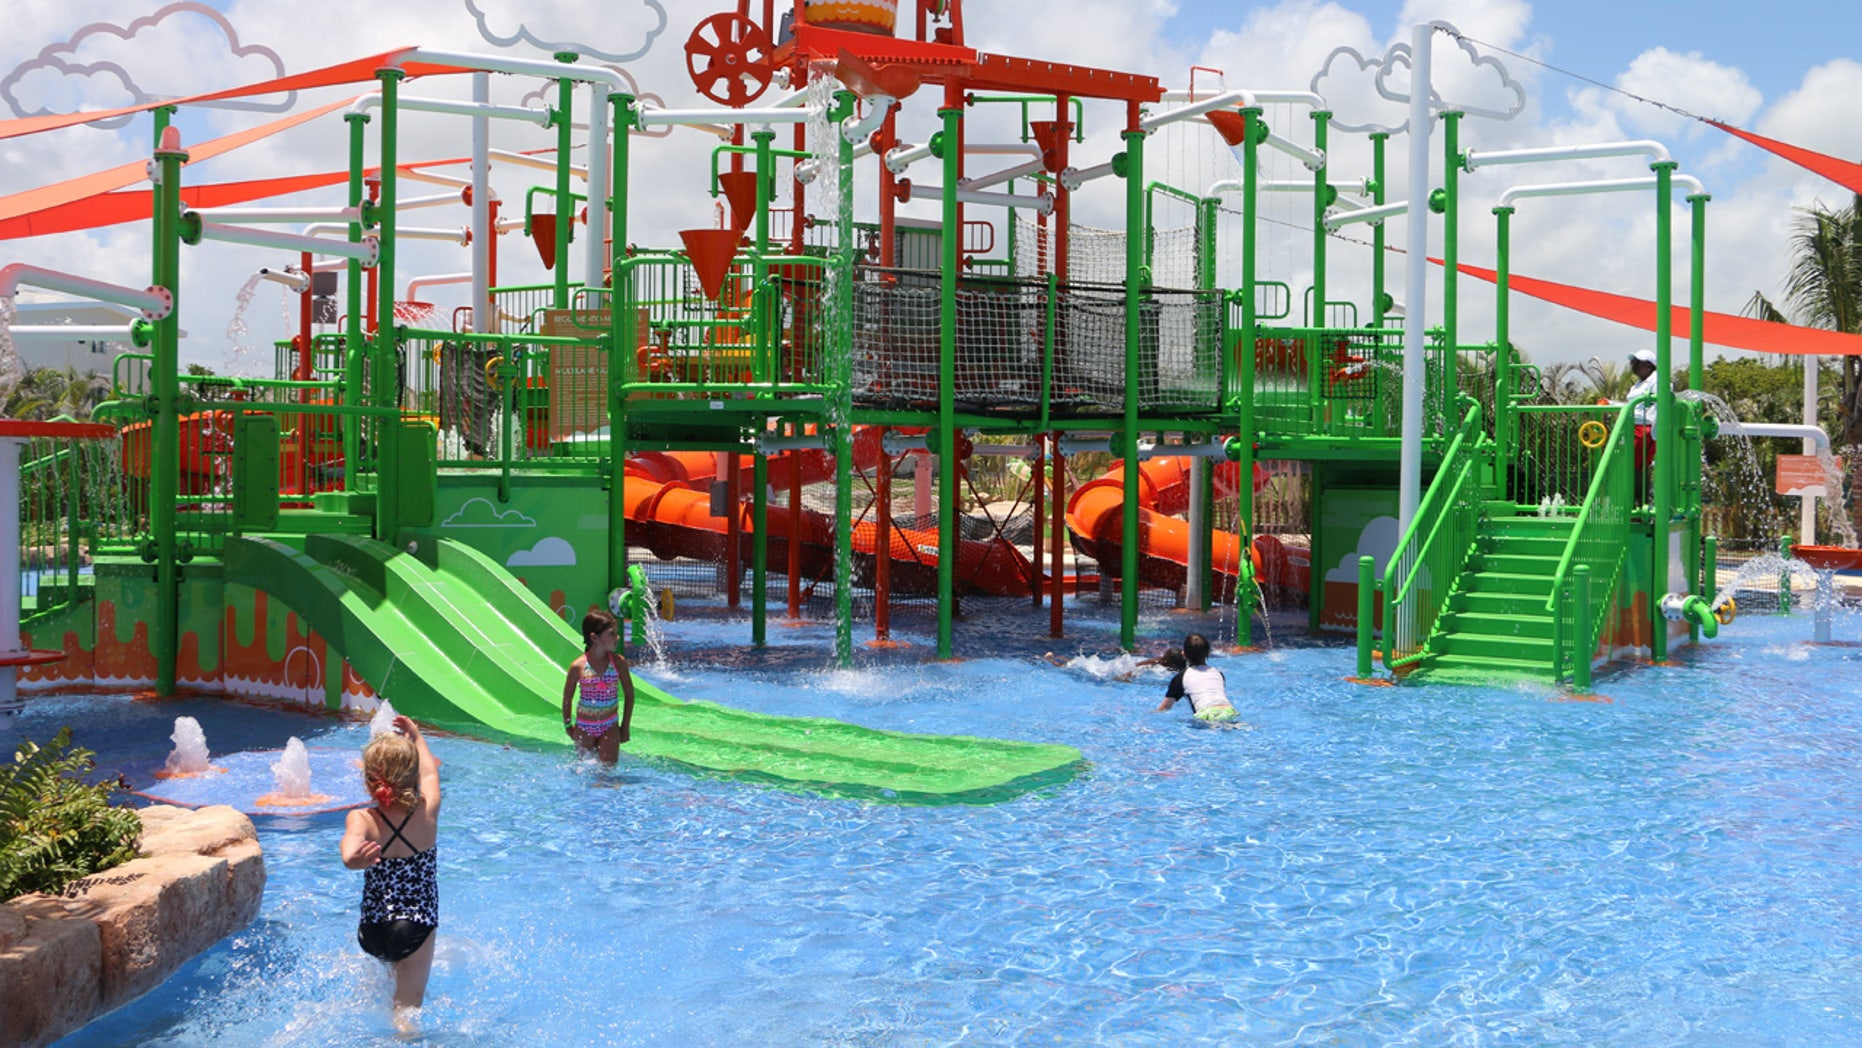 The Aqua Nick is an adult-sized water park that caters to kids of all ages.